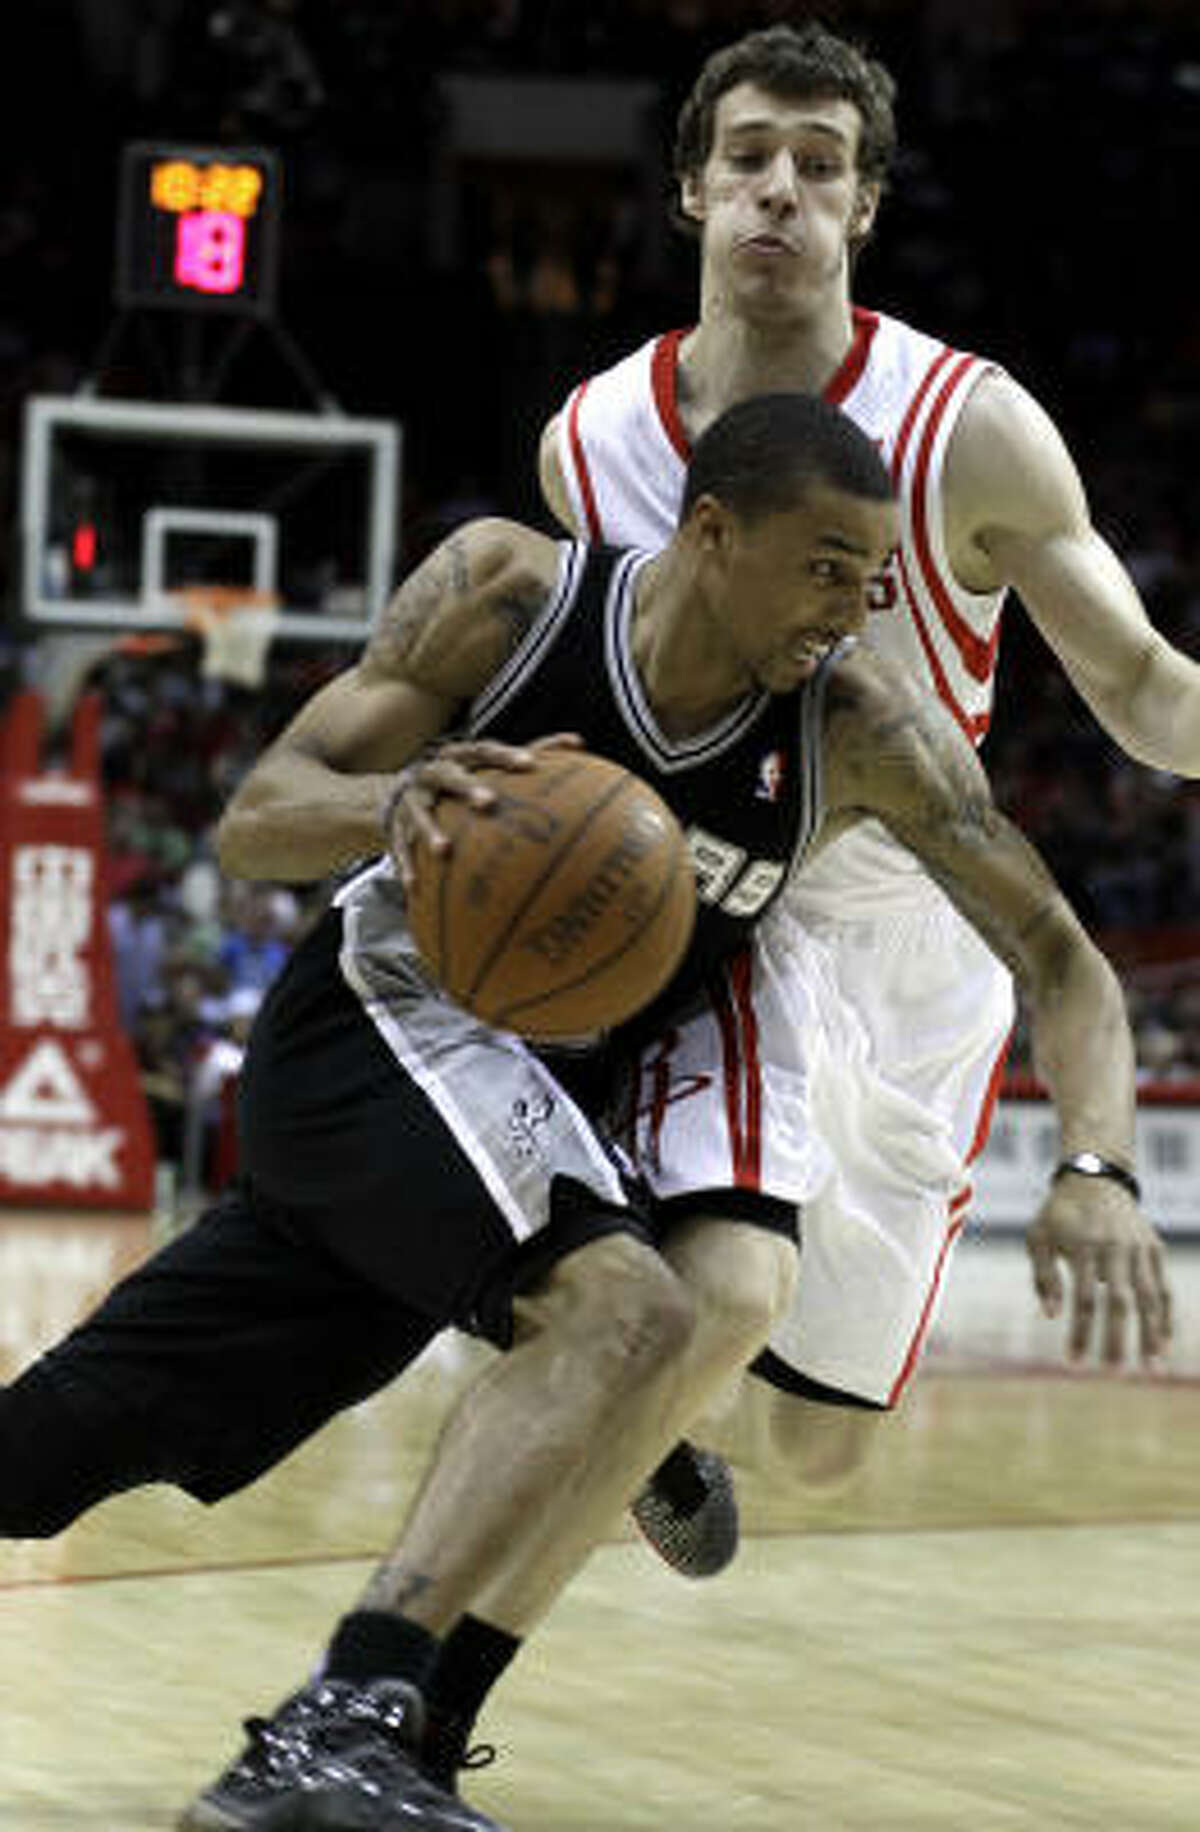 San Antonio's George Hill, front, tries to drive the ball past Rockets guard Goran Dragic.